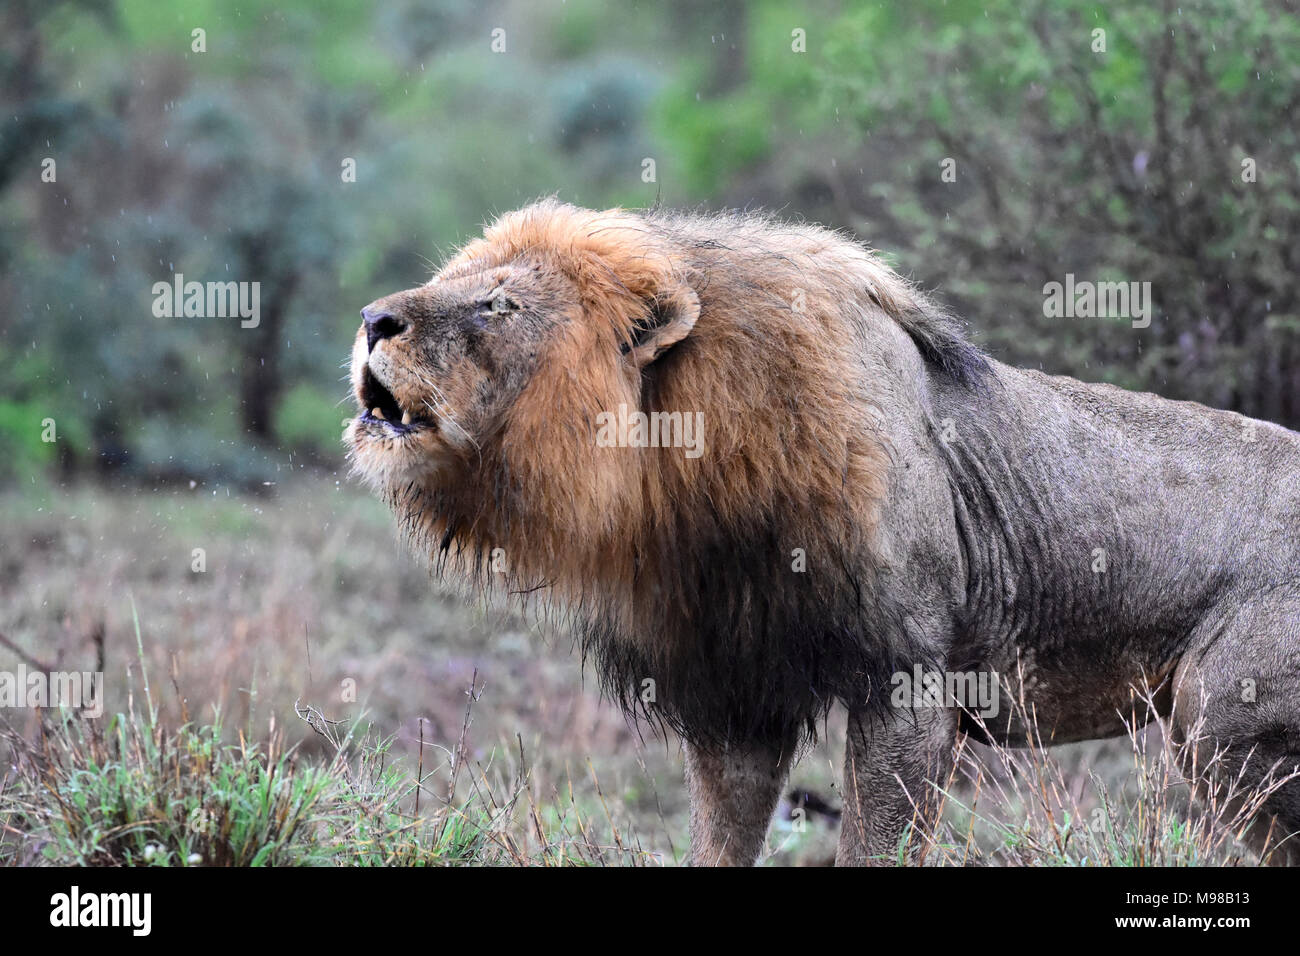 Angry wet male lion roaring in the rain. - Stock Image